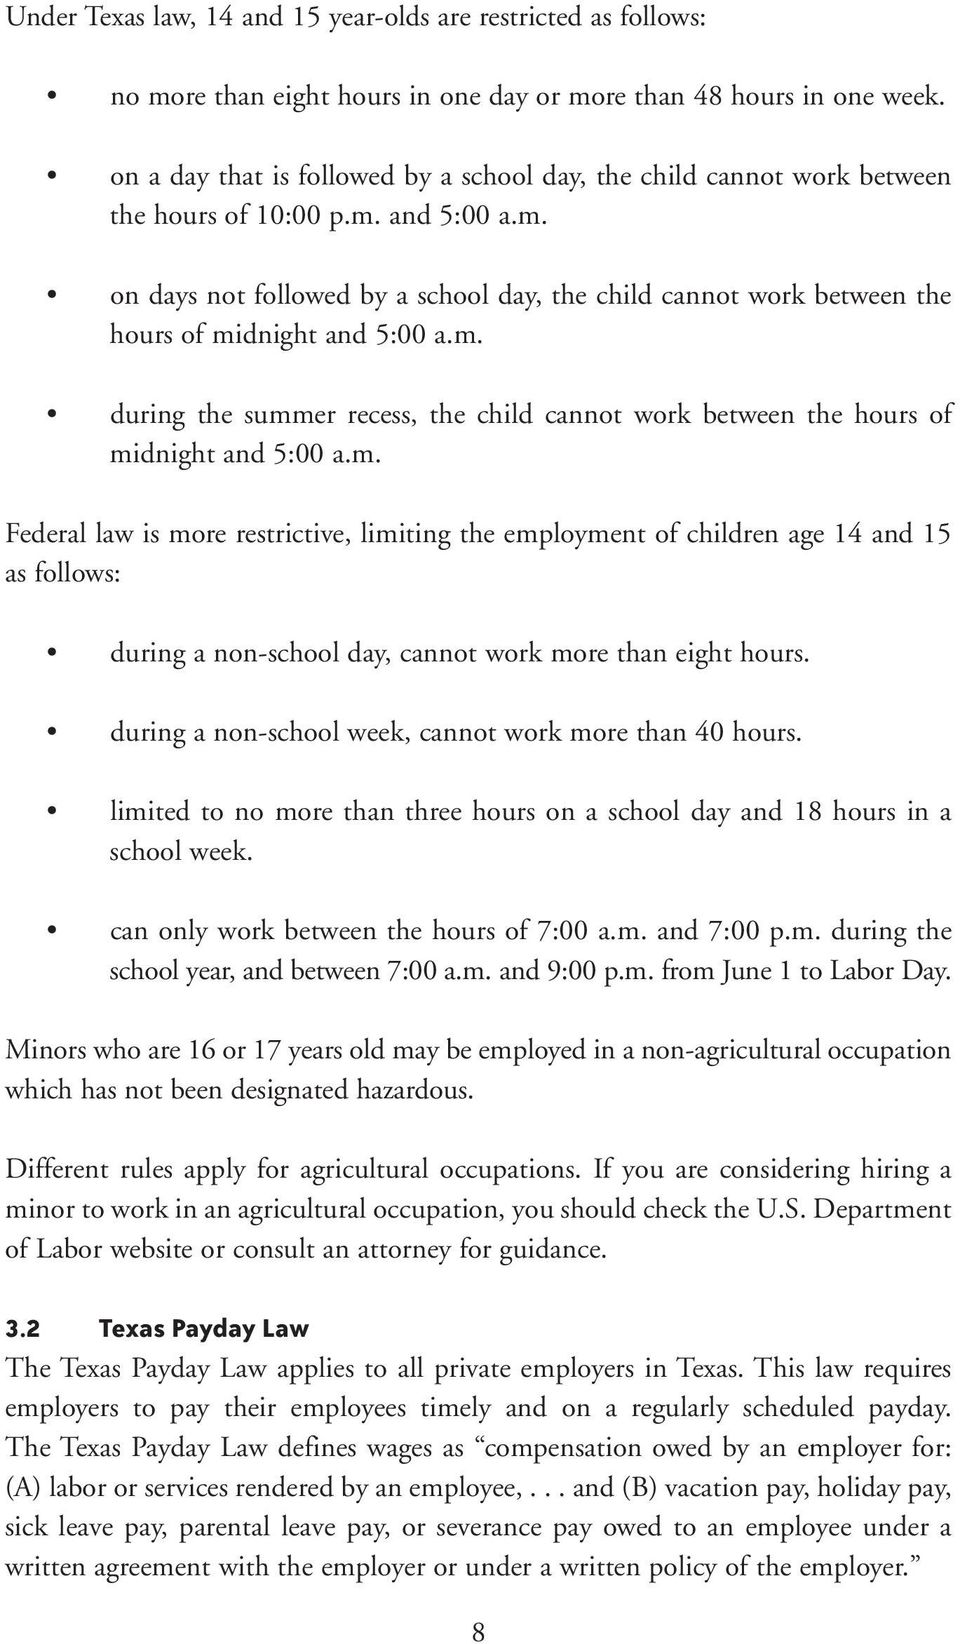 m. during the summer recess, the child cannot work between the hours of midnight and 5:00 a.m. Federal law is more restrictive, limiting the employment of children age 14 and 15 as follows: during a non-school day, cannot work more than eight hours.